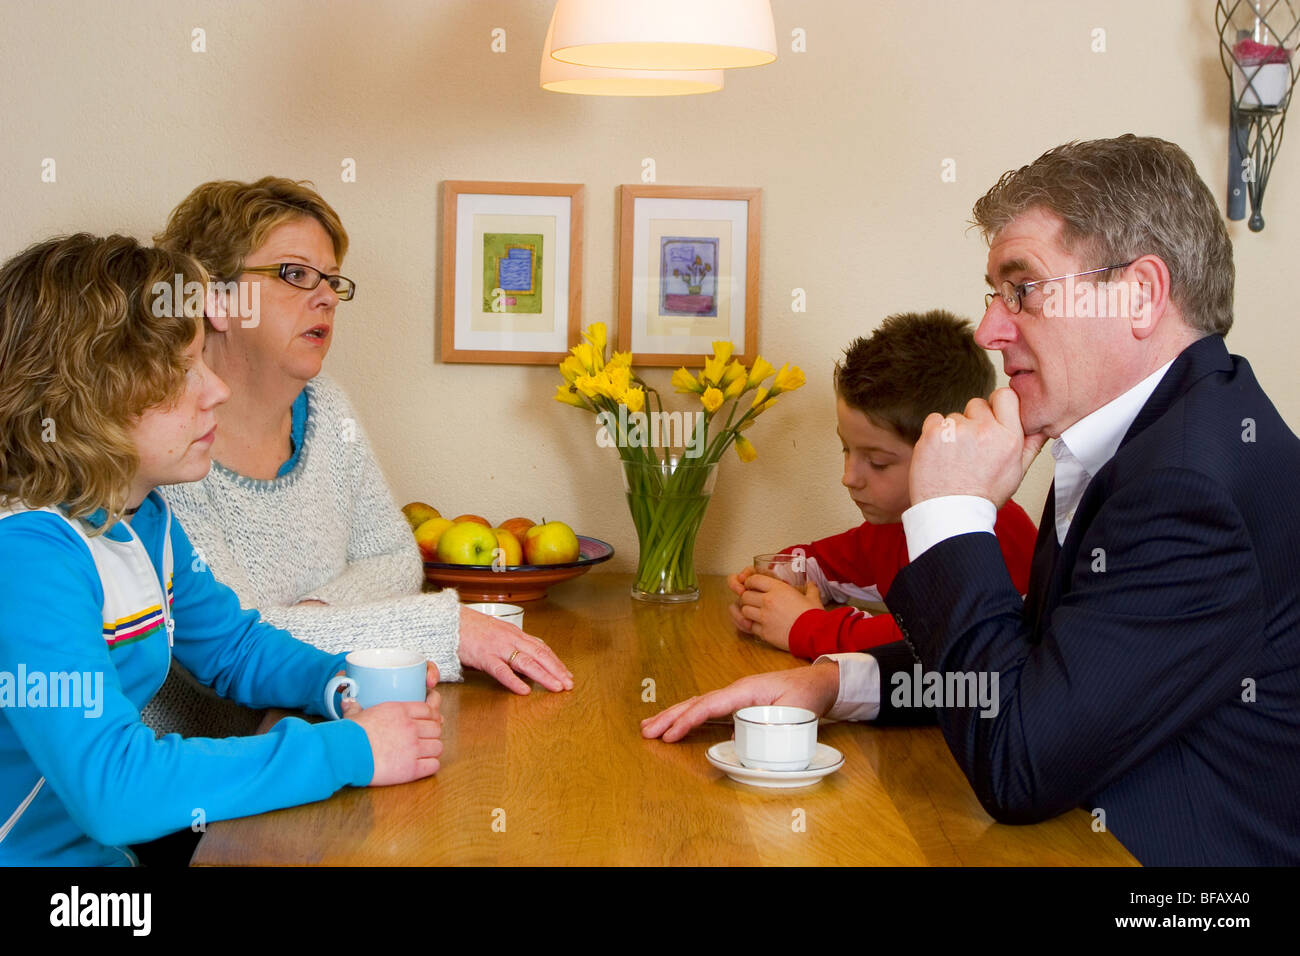 Family tension - Family talking at table - Stock Image